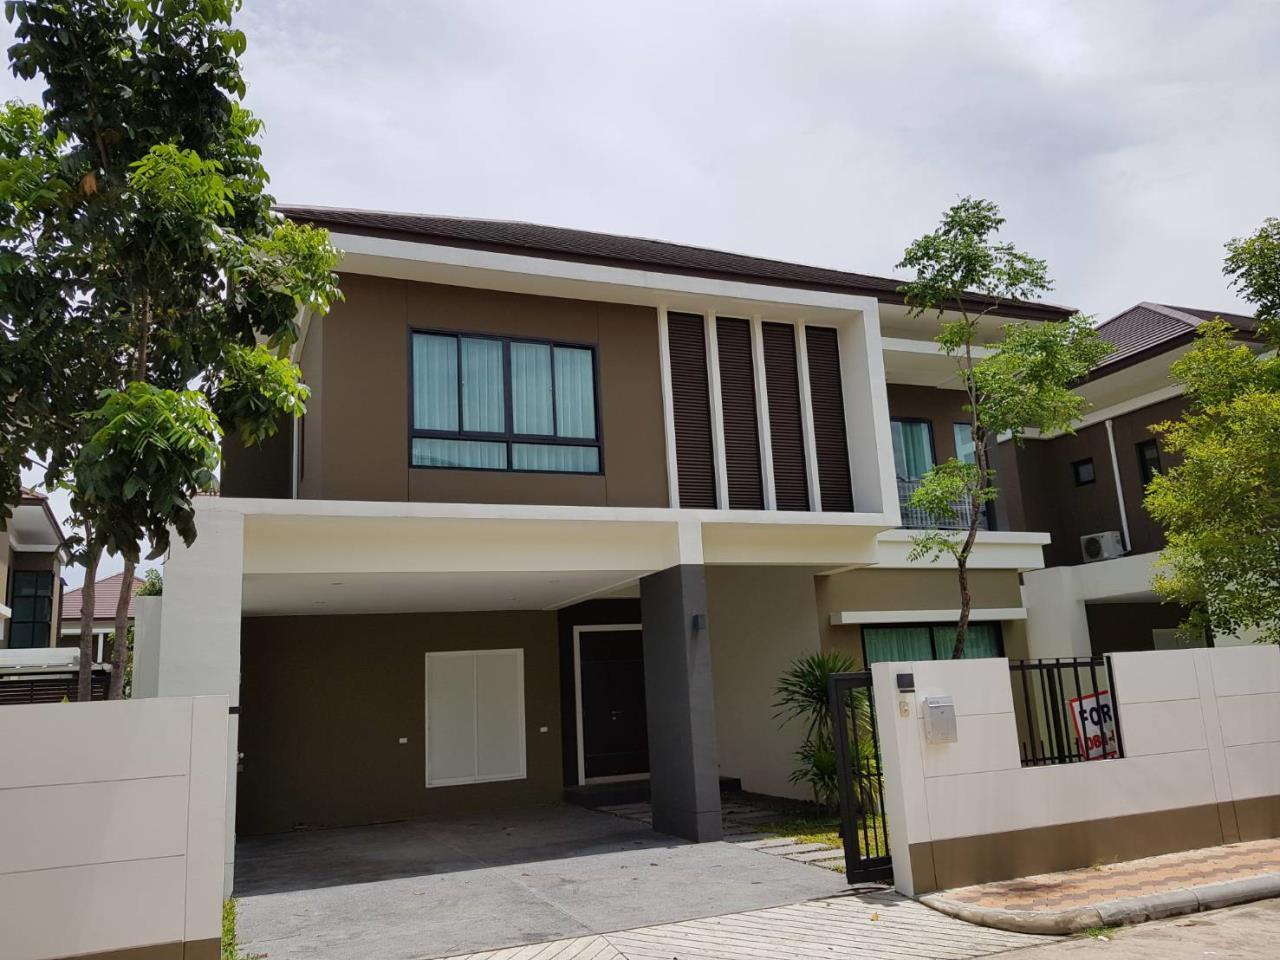 Right Move Thailand Agency's HR820 Villa Arcadia 2 house in compound for rent 80,000THB - for sale 11,900,000THB - 4 bedrooms - 230sqm. 1